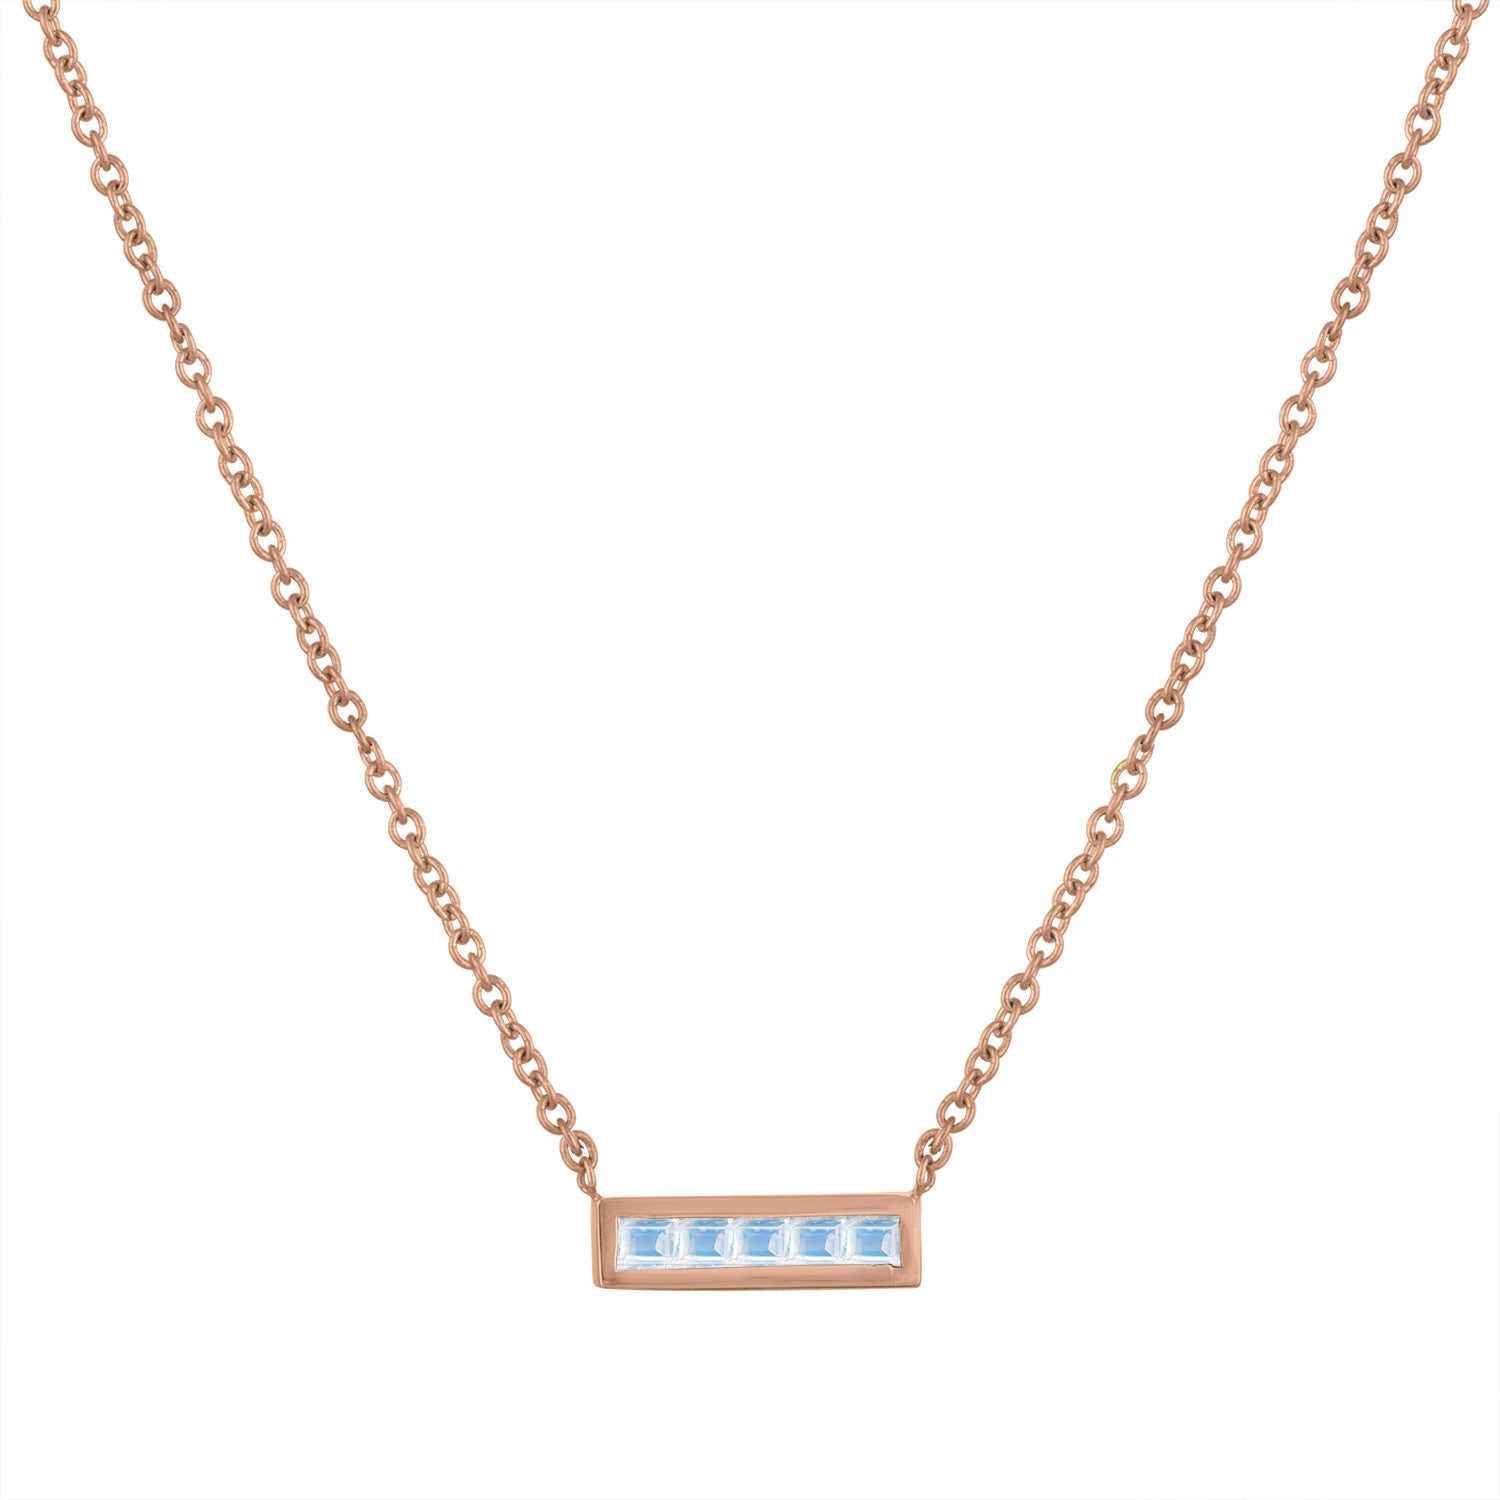 Small bar pendant with 5 square moonstones